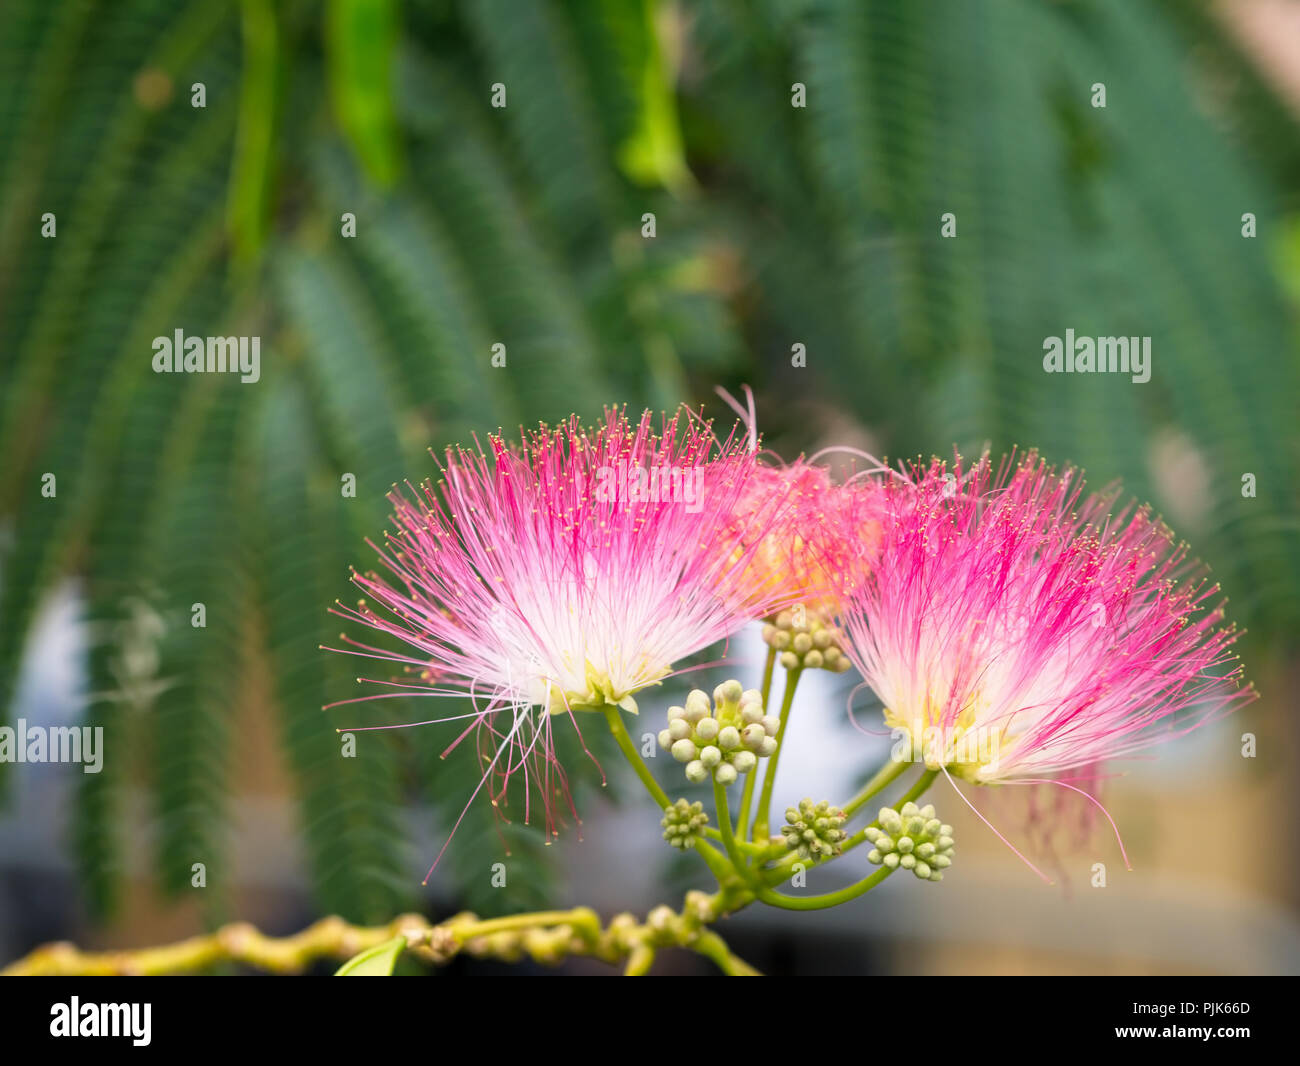 Close up of persian silk tree or pink siris albizia julibrissin close up of persian silk tree or pink siris albizia julibrissin flowers foliage and immature fruit in the background mightylinksfo